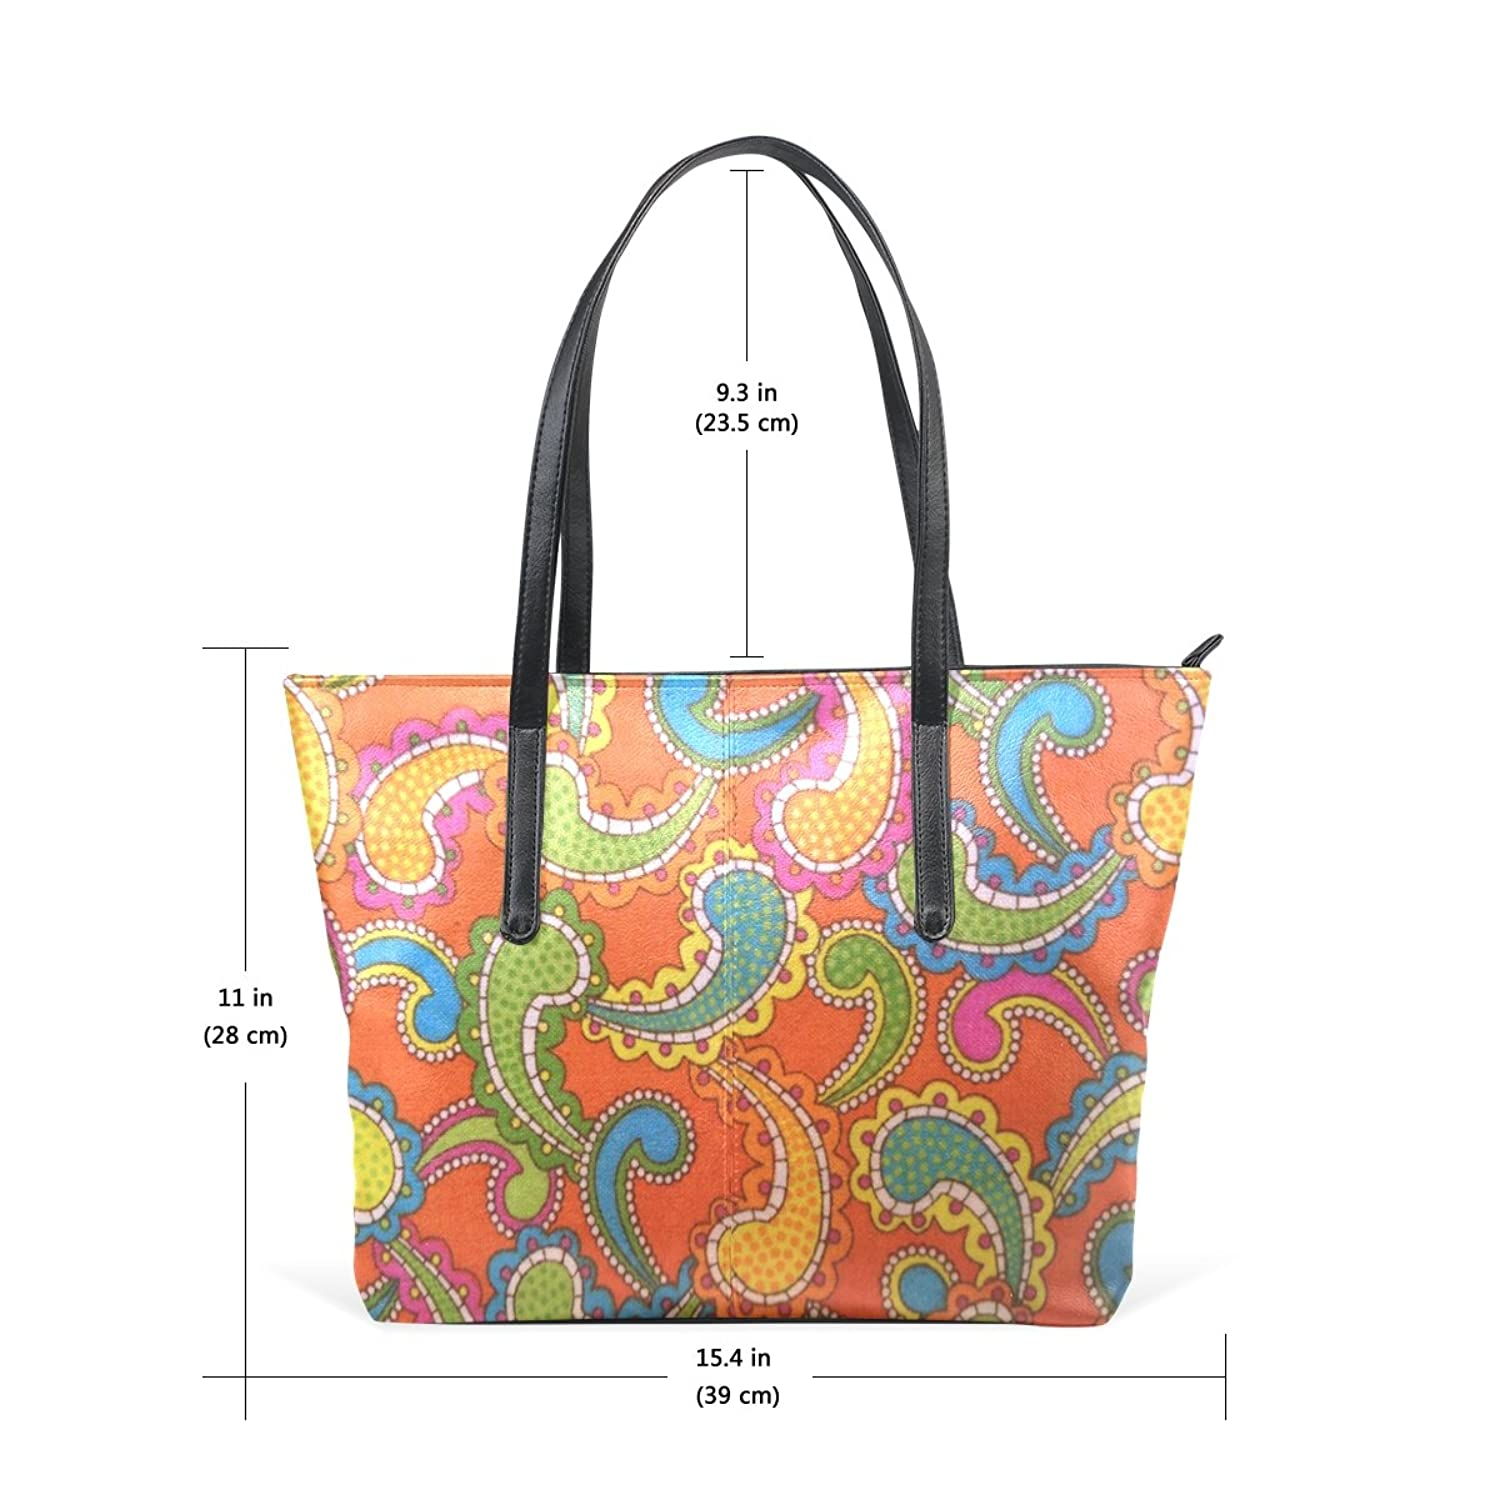 WOOR Paisley Women's Soft Leather Zipper Closure Large Handbags Tote Shoulder Bags